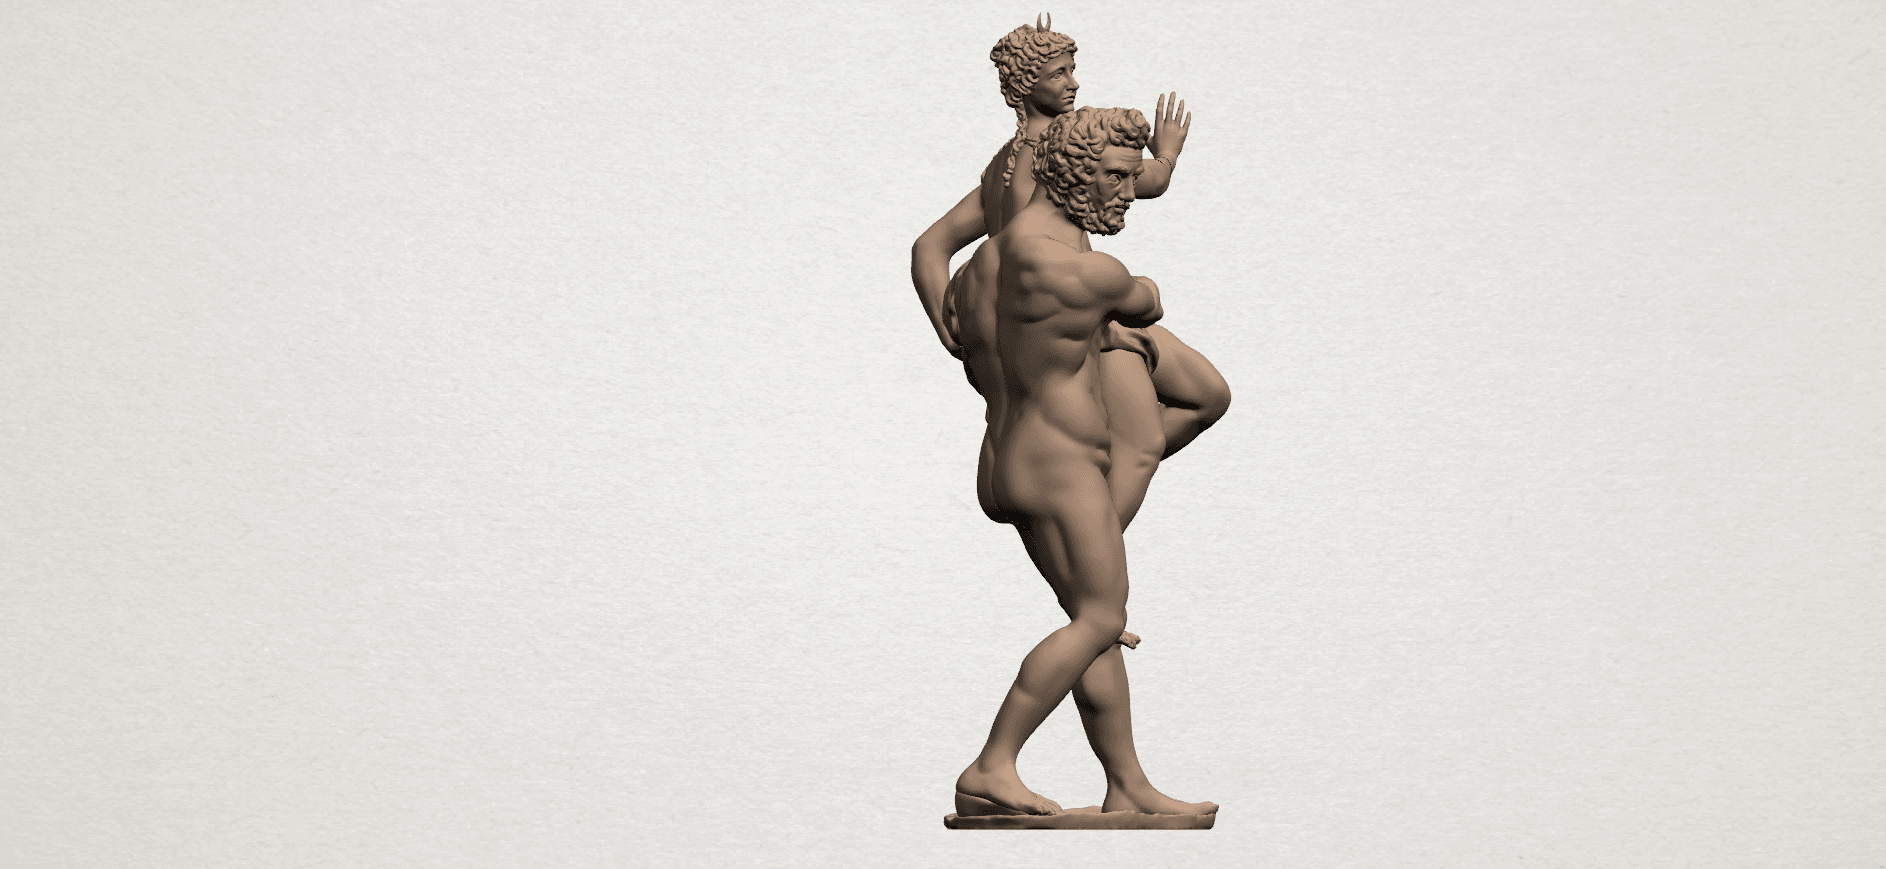 Naked Couple (iv) A06.png Download free STL file Naked Couple 04 • 3D printable model, GeorgesNikkei